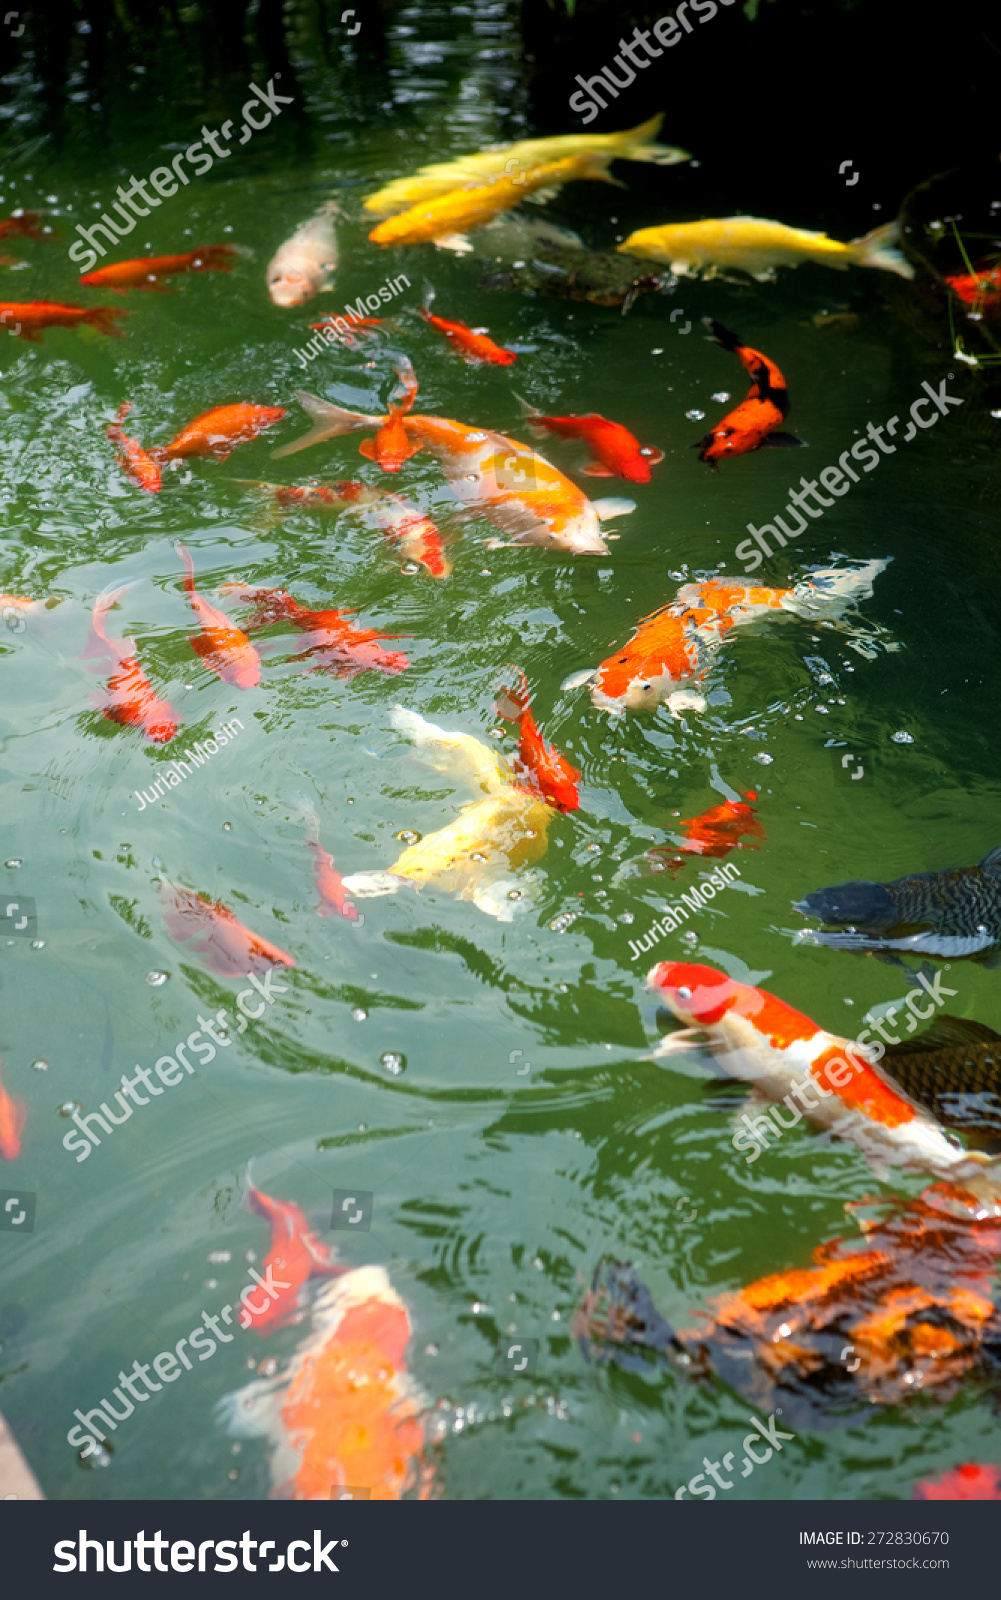 Beautiful ornamental koi fish swimming in pond stock for Ornamental fish for pond